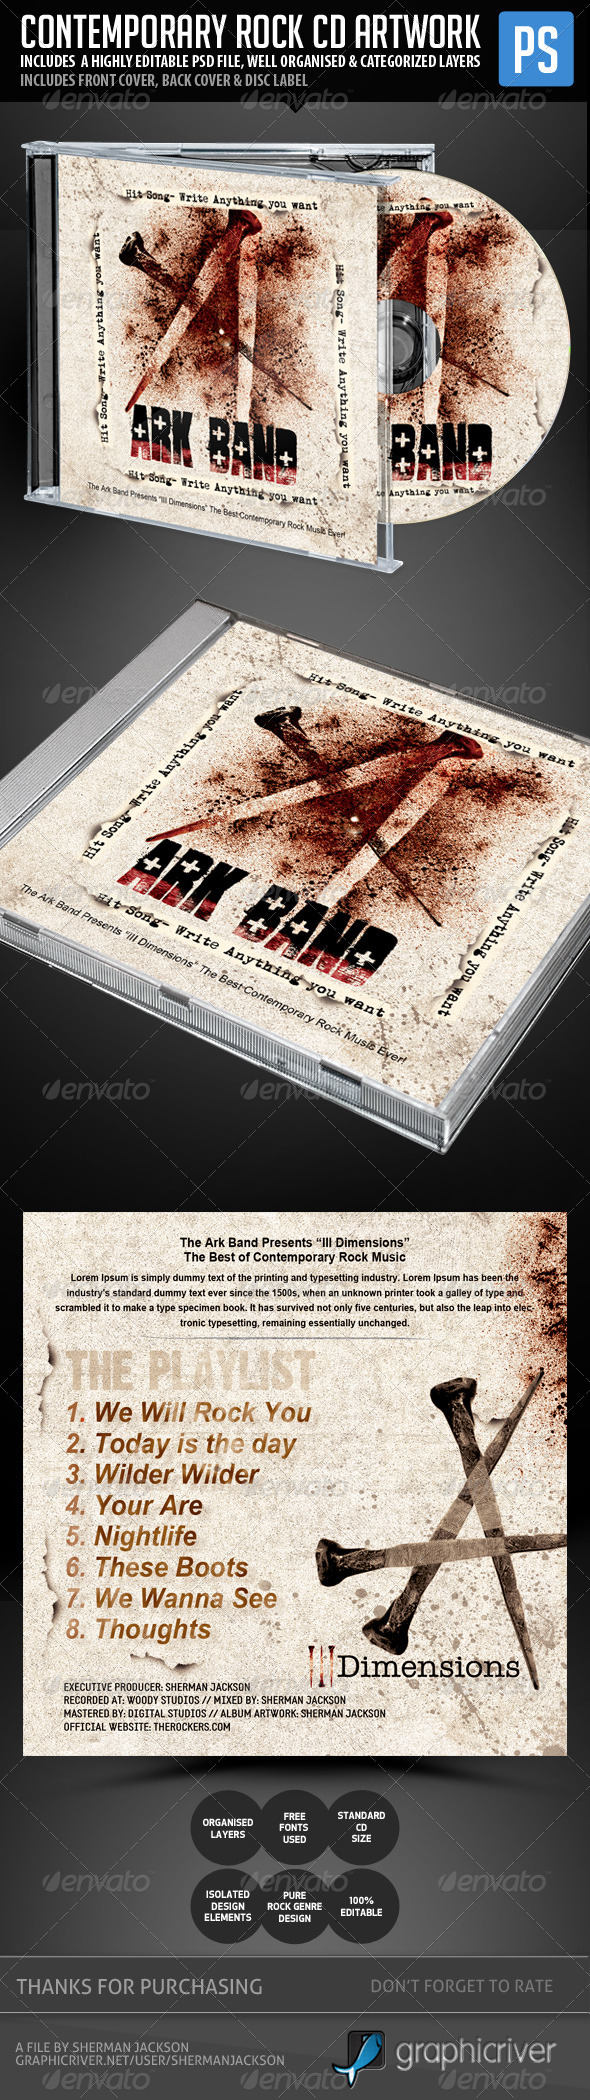 GraphicRiver Contemporary Rock CD Artwork Template 5353661